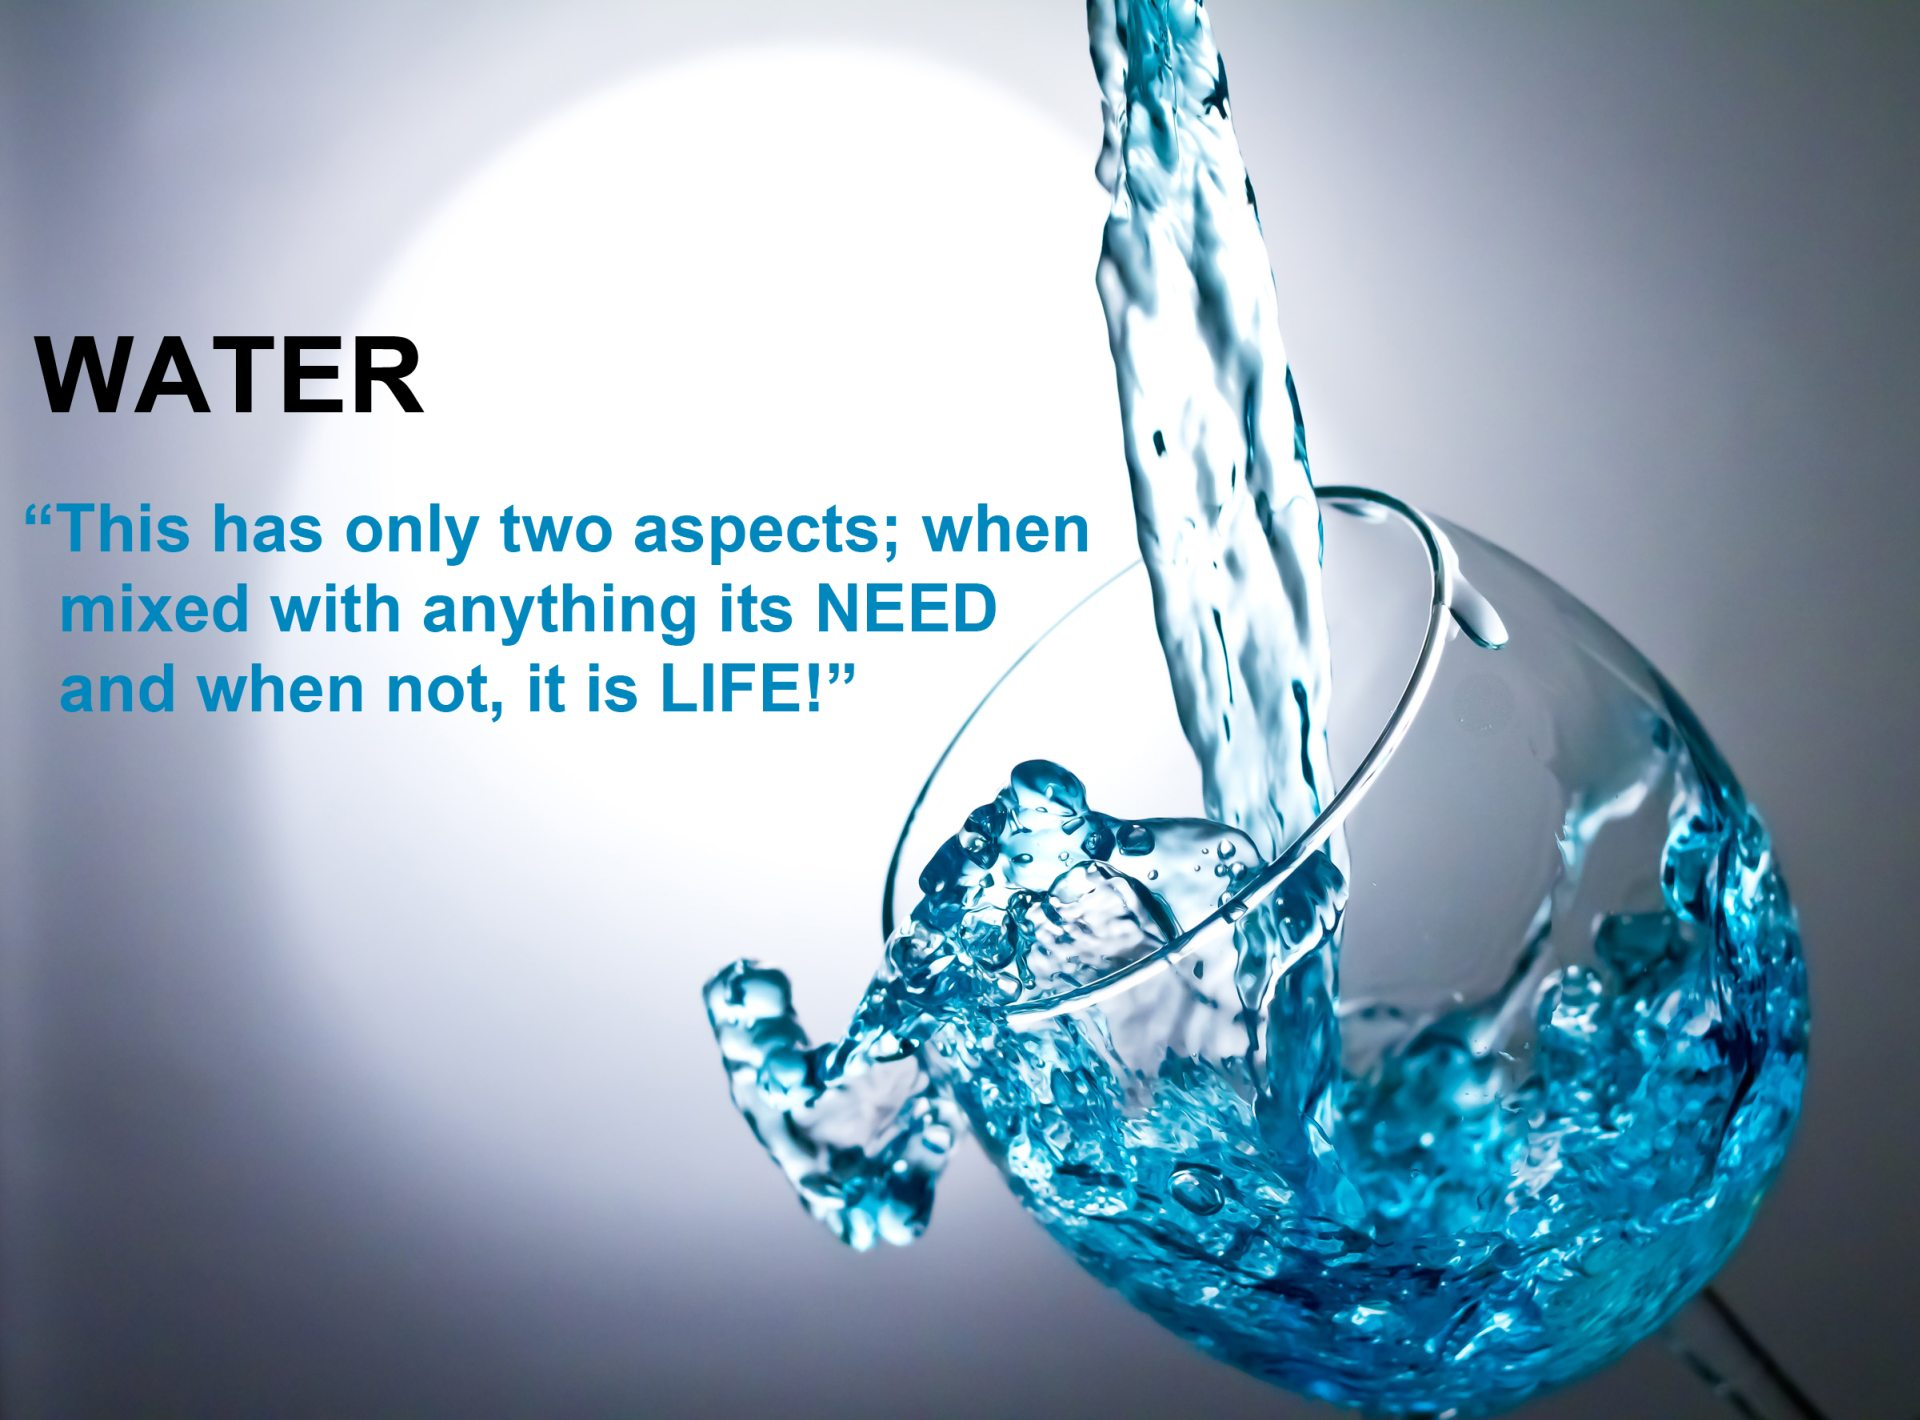 Water Quotes By Famous People